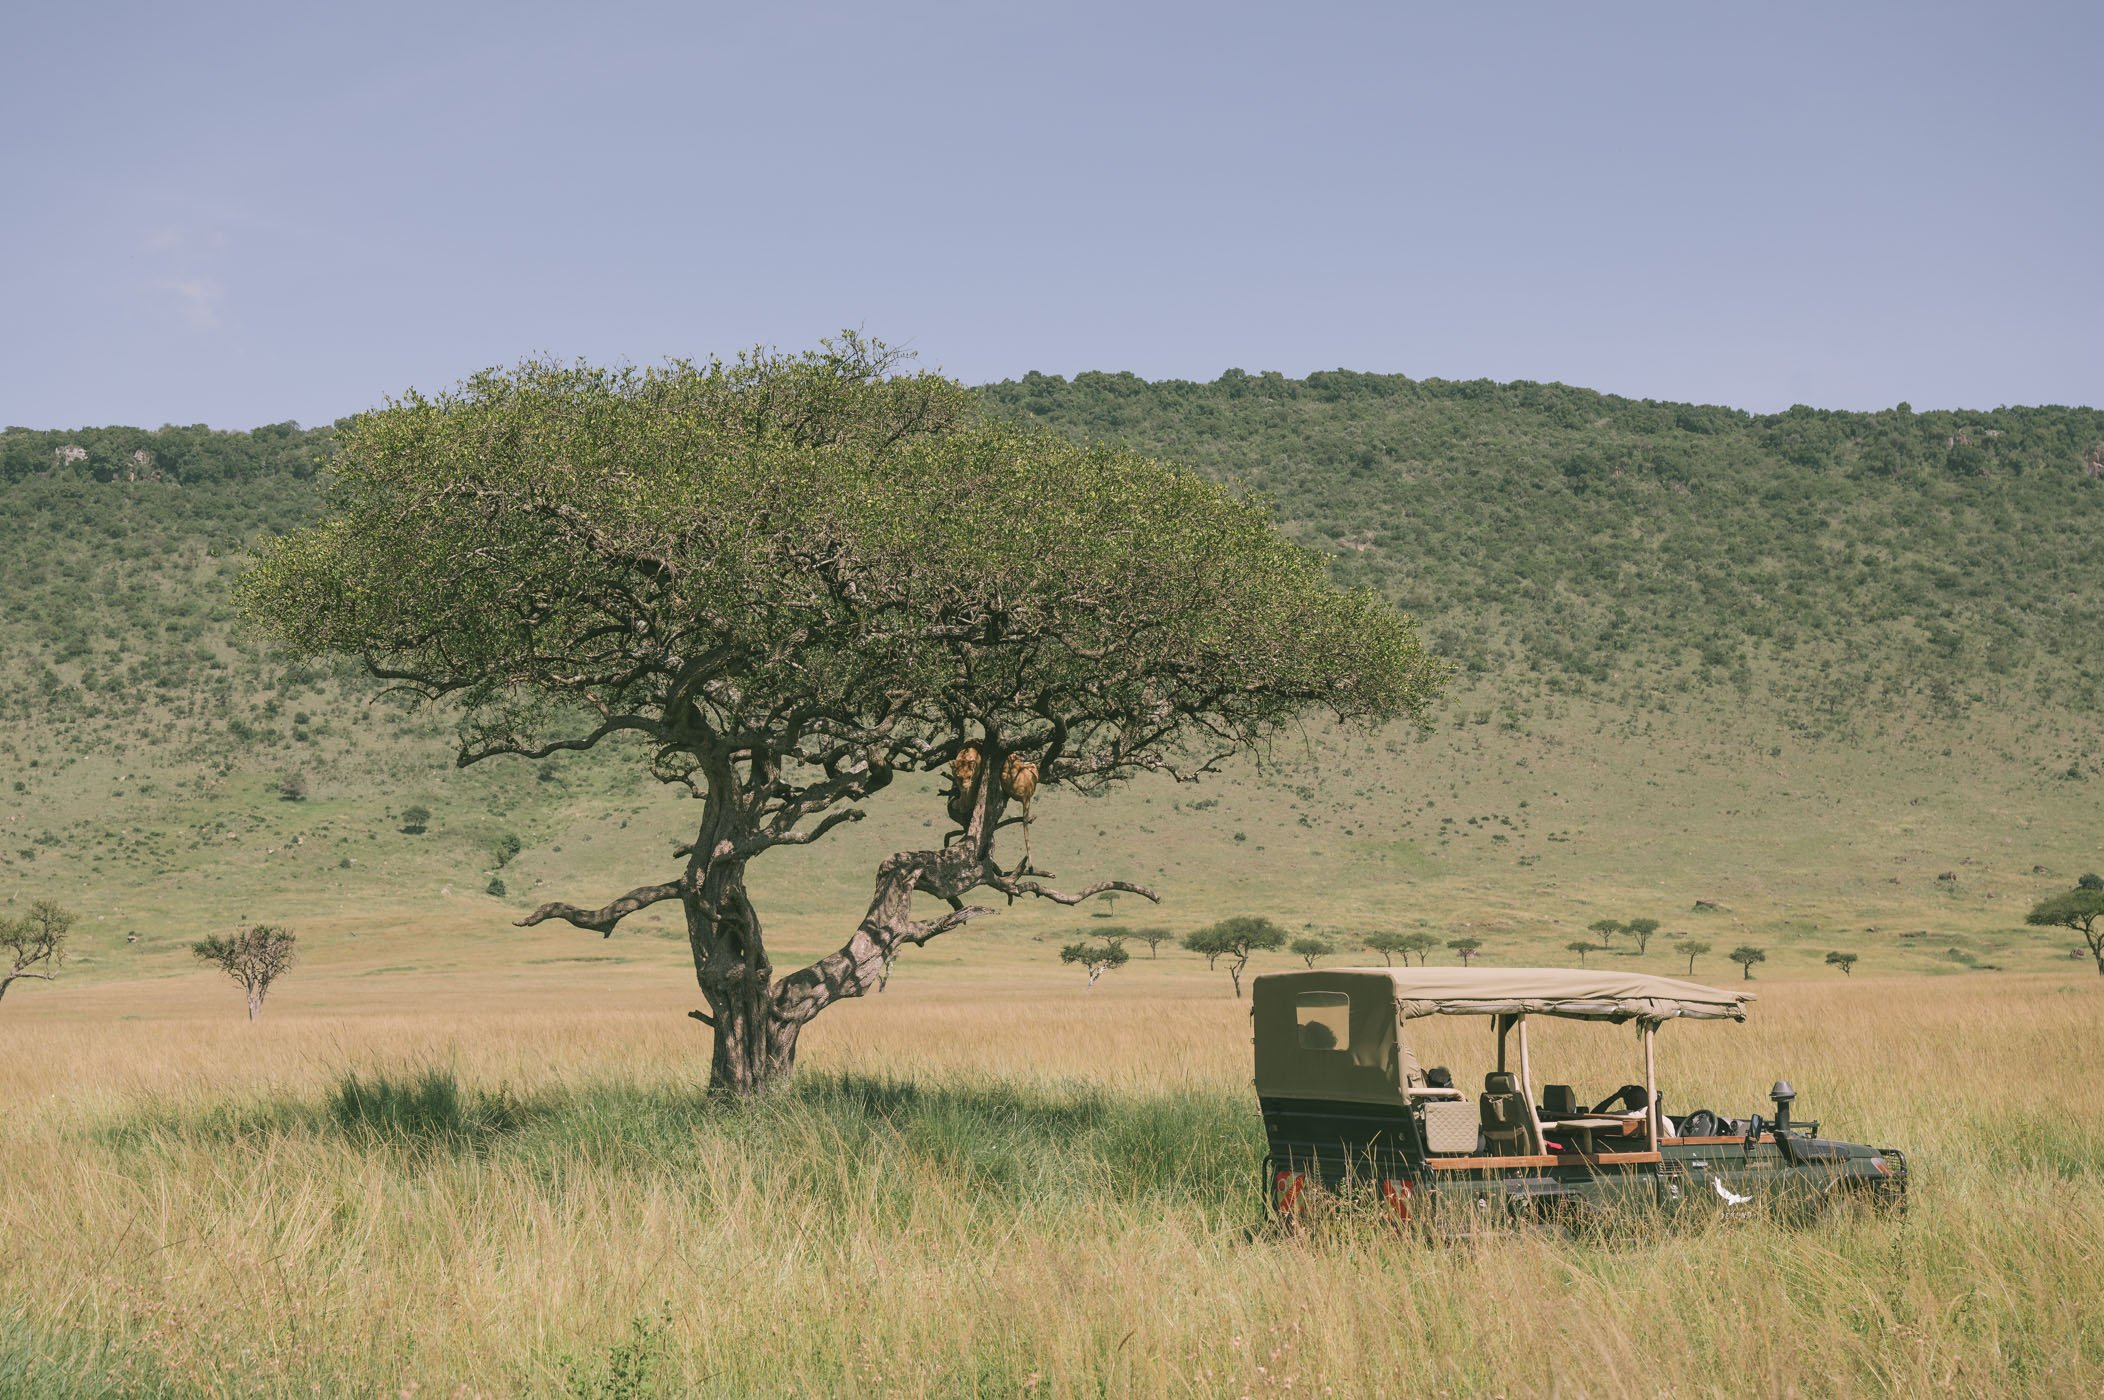 An andBeyond safari vehicle in the Mara Triangle next to the tree-climbing lions